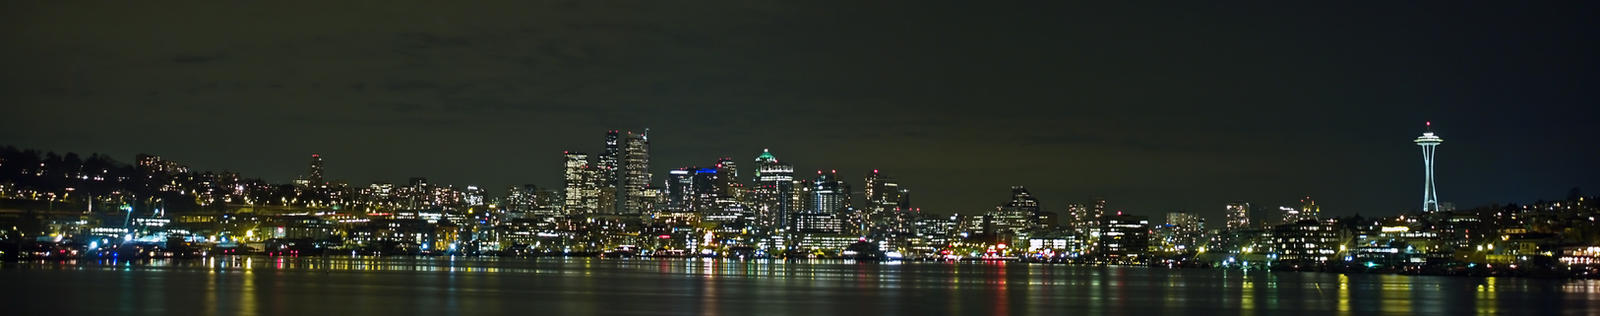 seattle panoramic 1 by photoboy1002001 on deviantart seattle panoramic by x6in6flames6x on deviantart 669